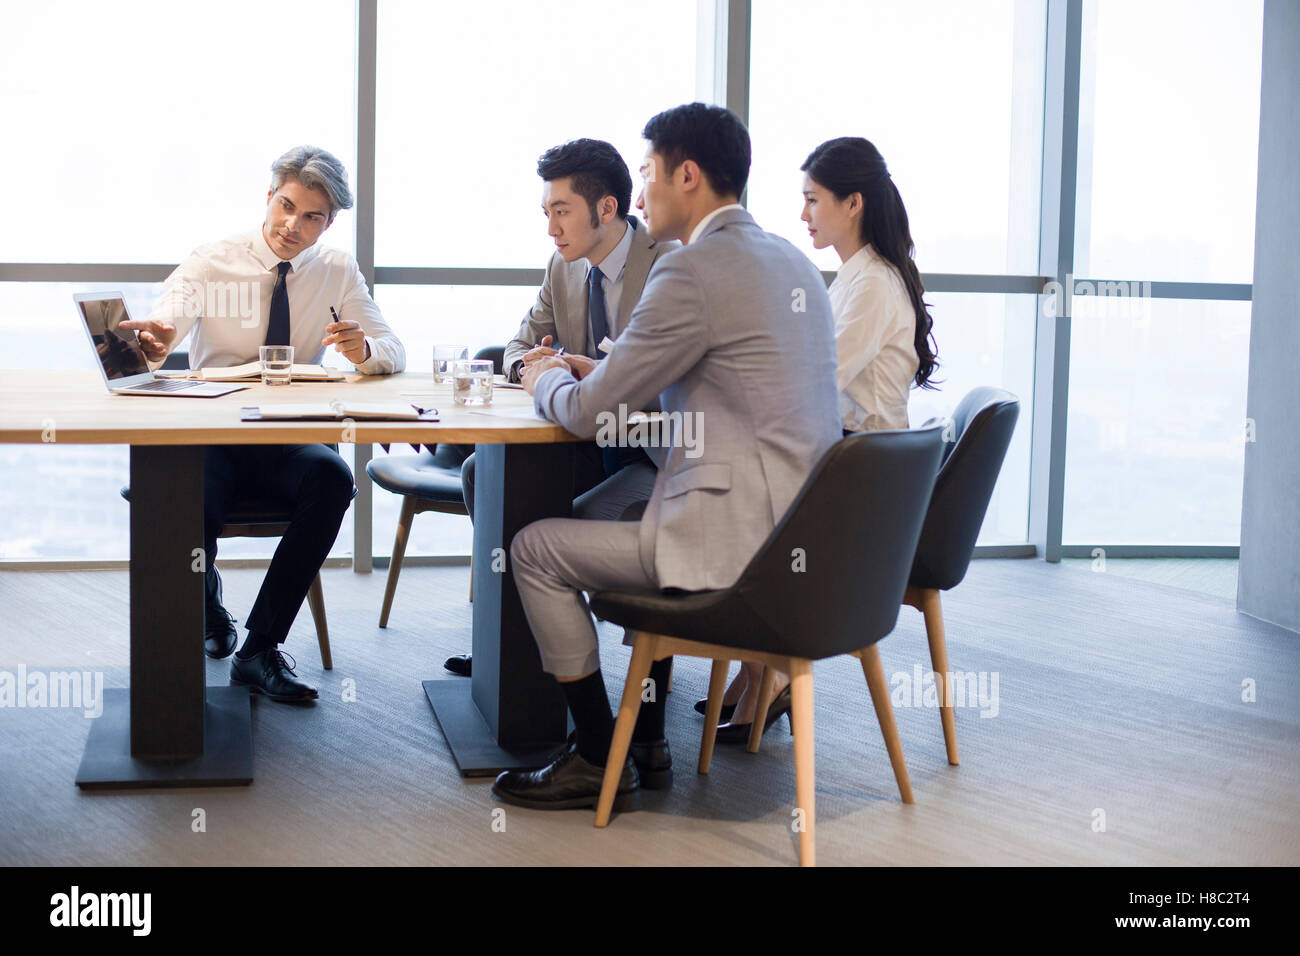 Chinese business people having meeting in board room - Stock Image